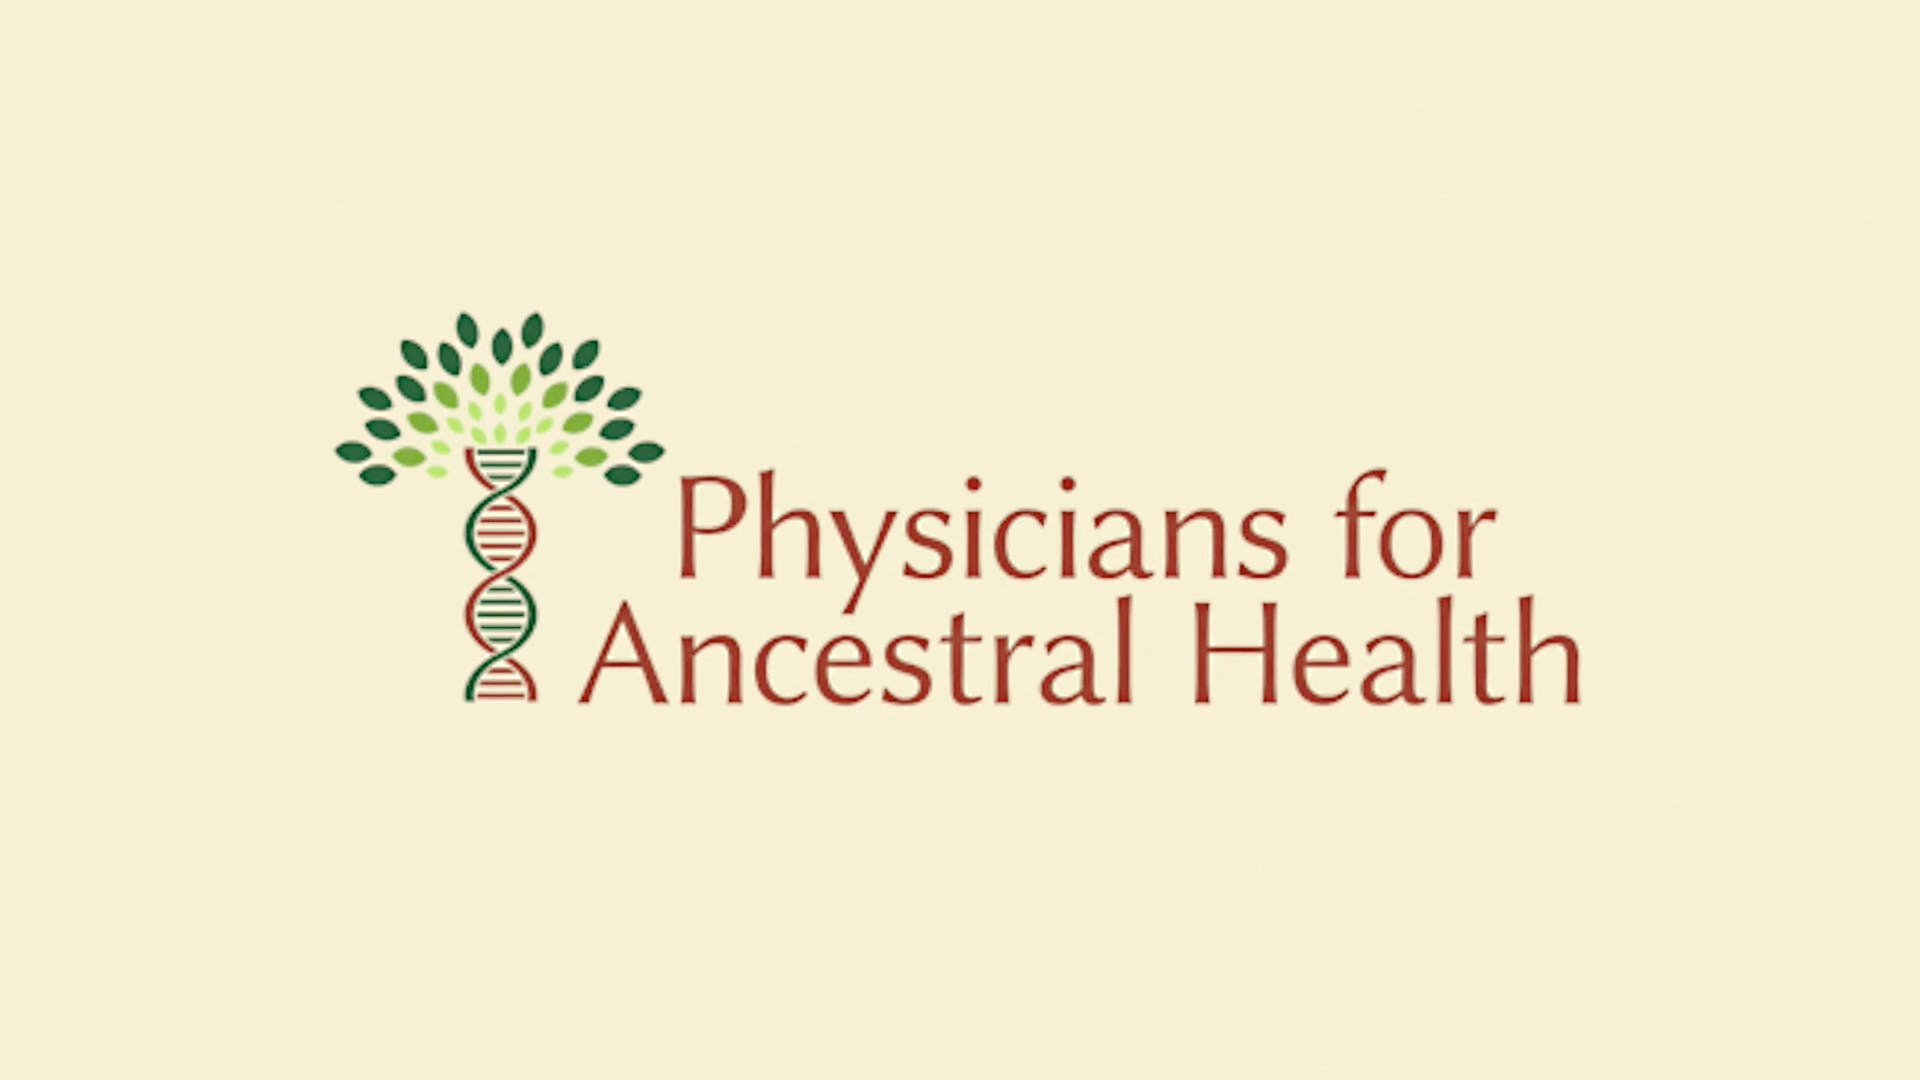 Physicians for Ancestral Health